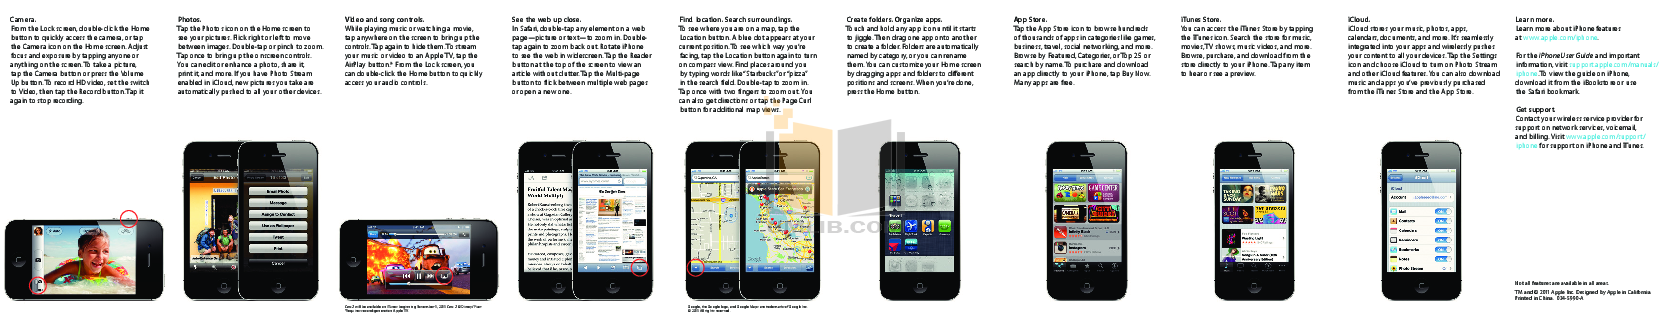 Apple user manual for iphone se